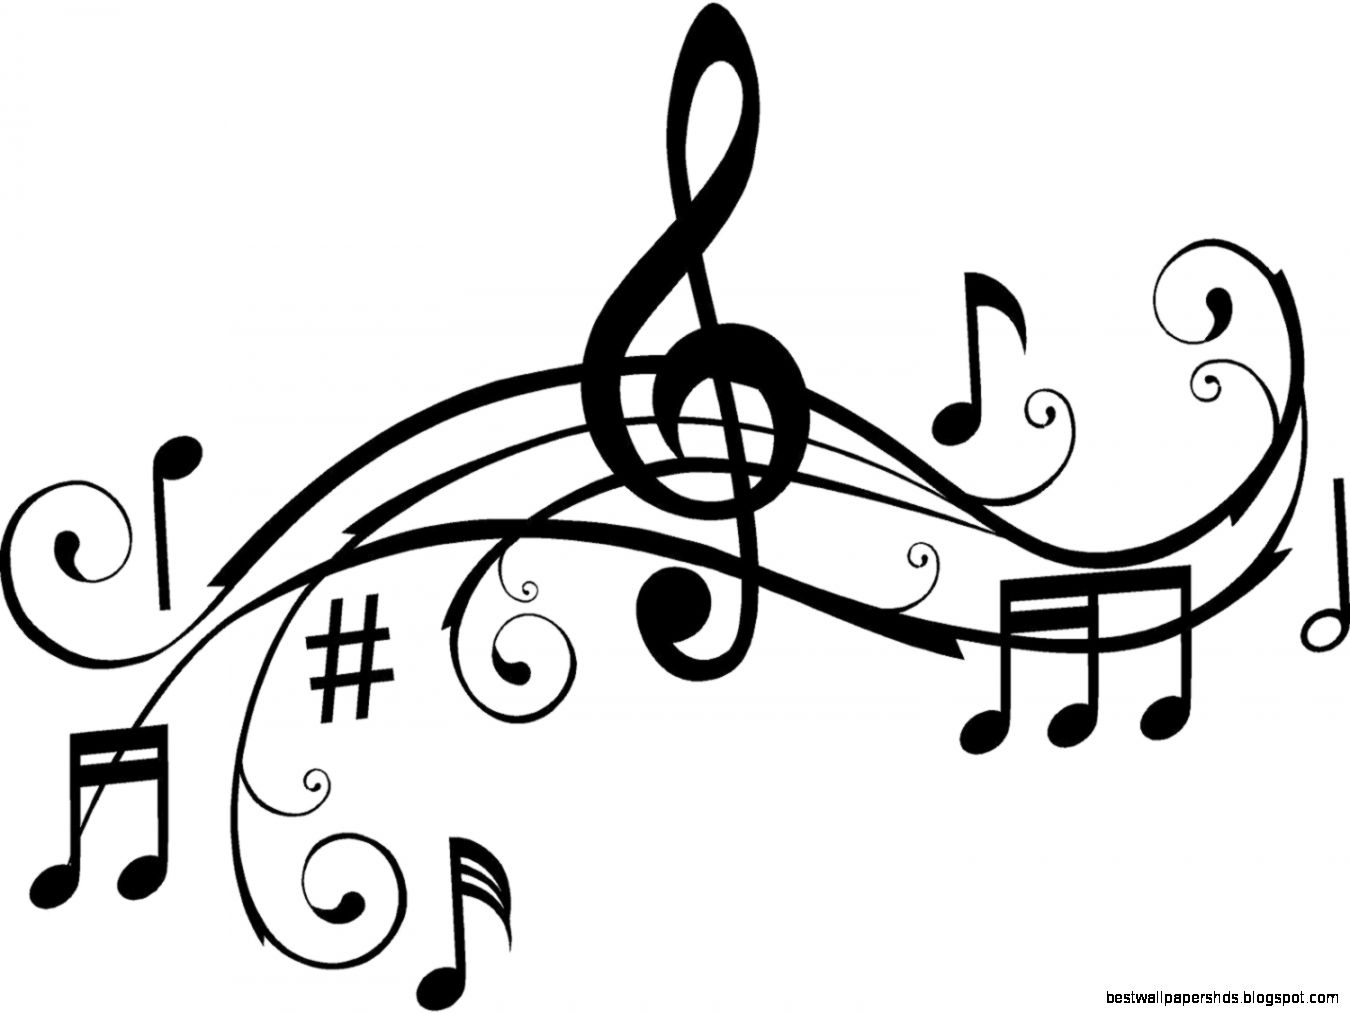 music notes clipart panda clip note musical google staff side education children play singing tattoo favorite